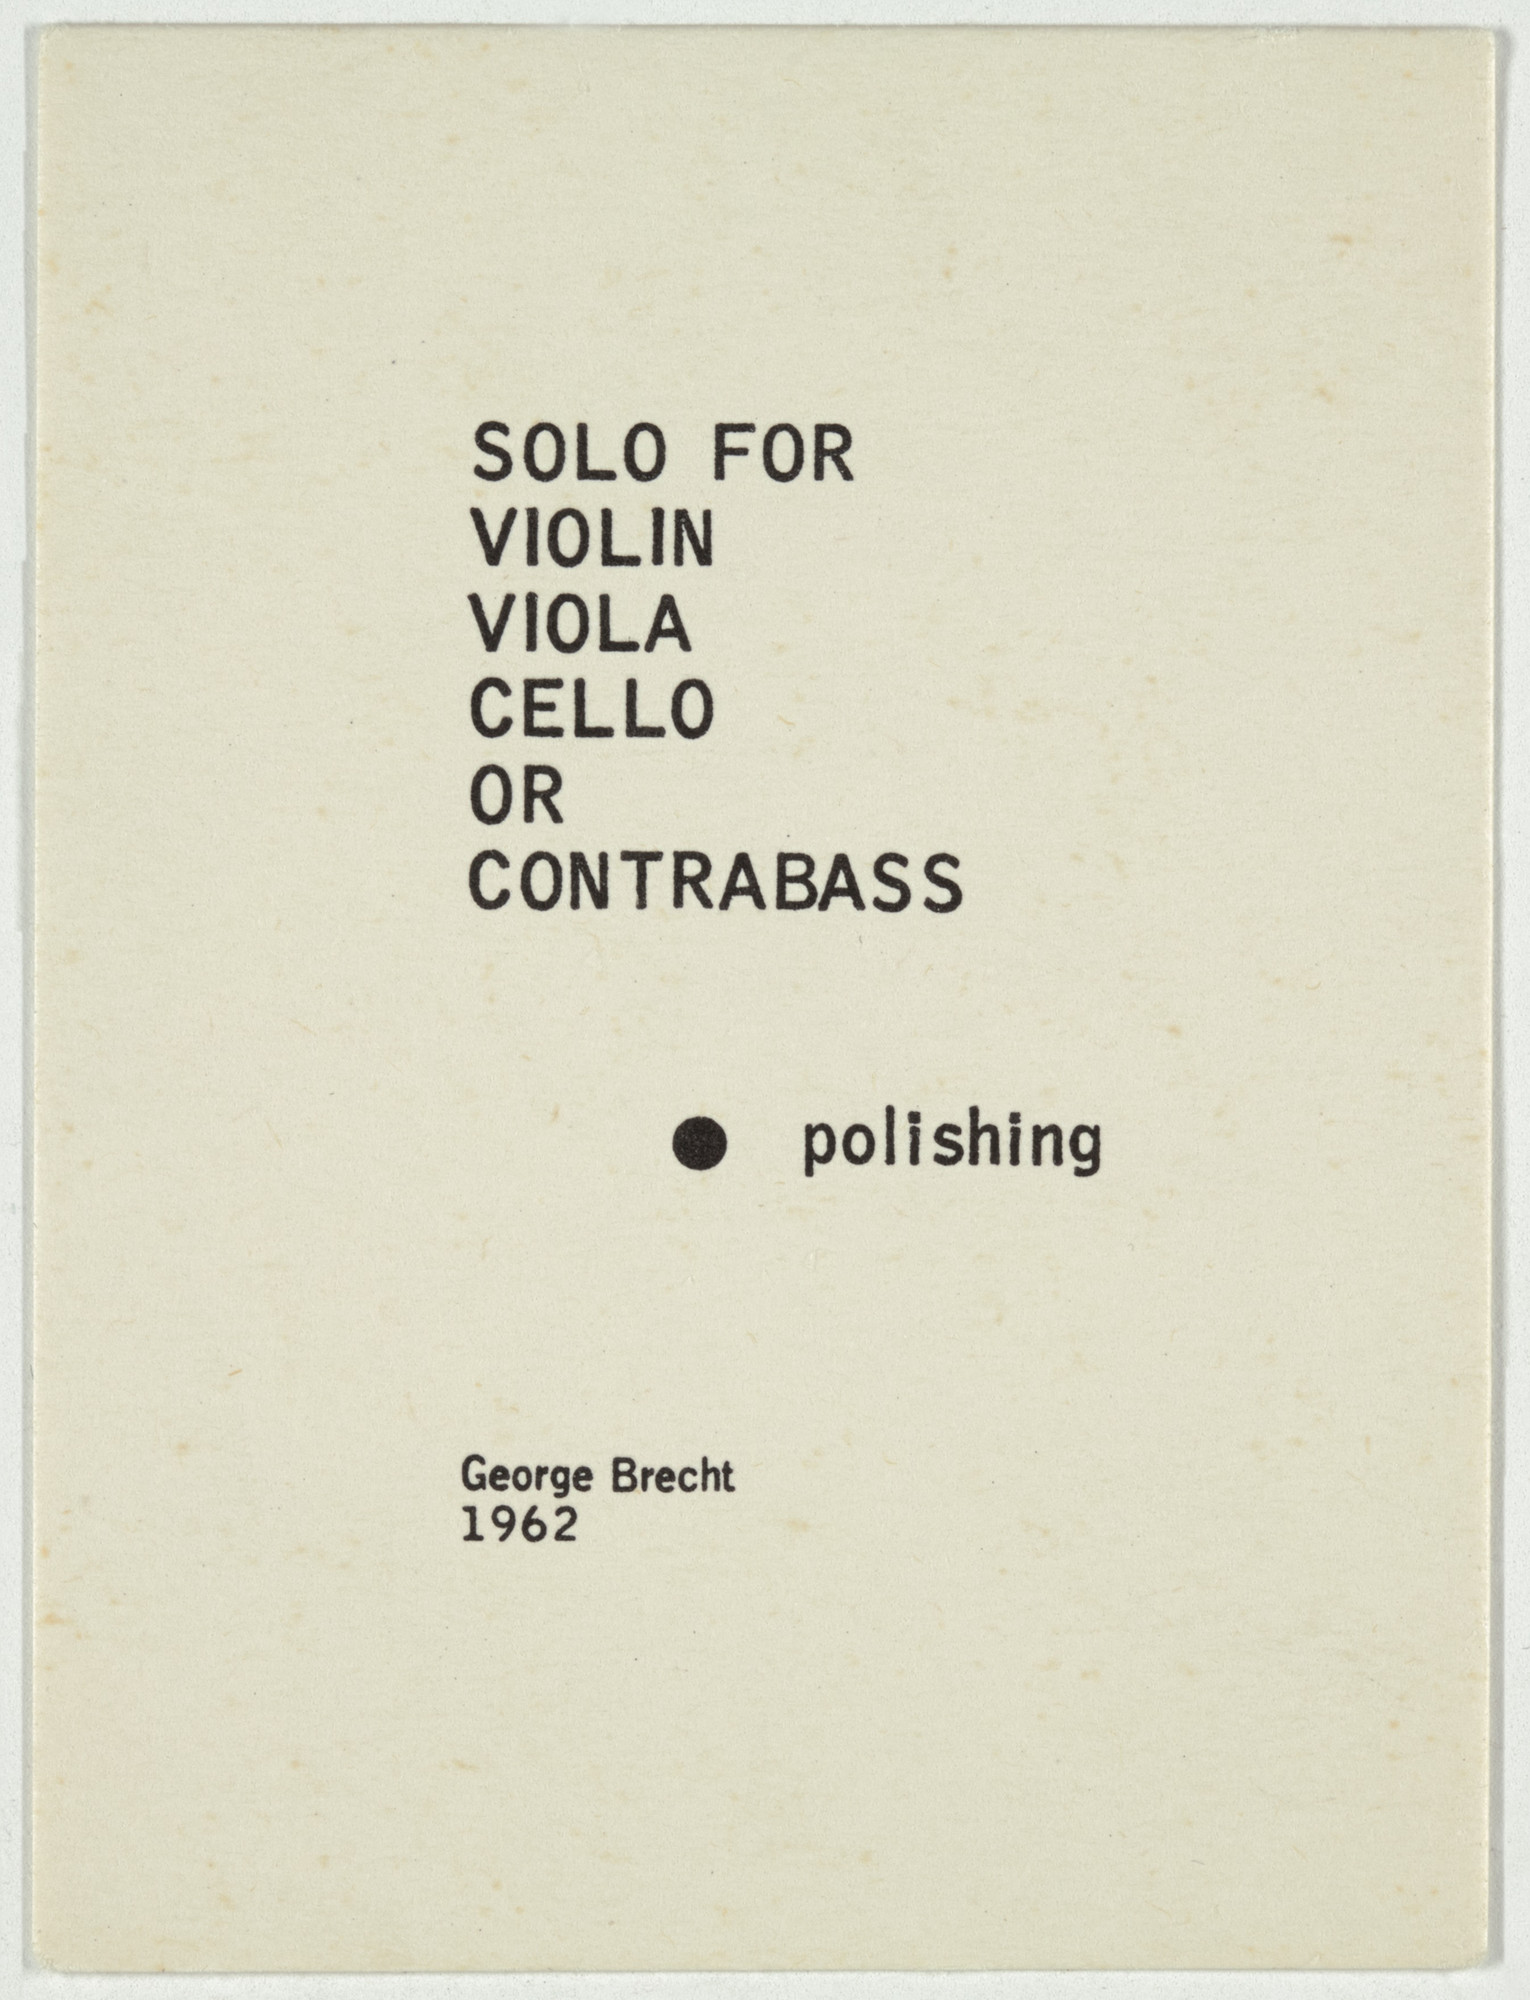 George Brecht. Solo for Violin, Viola, Cello, or Contrabass from Water Yam. 1963